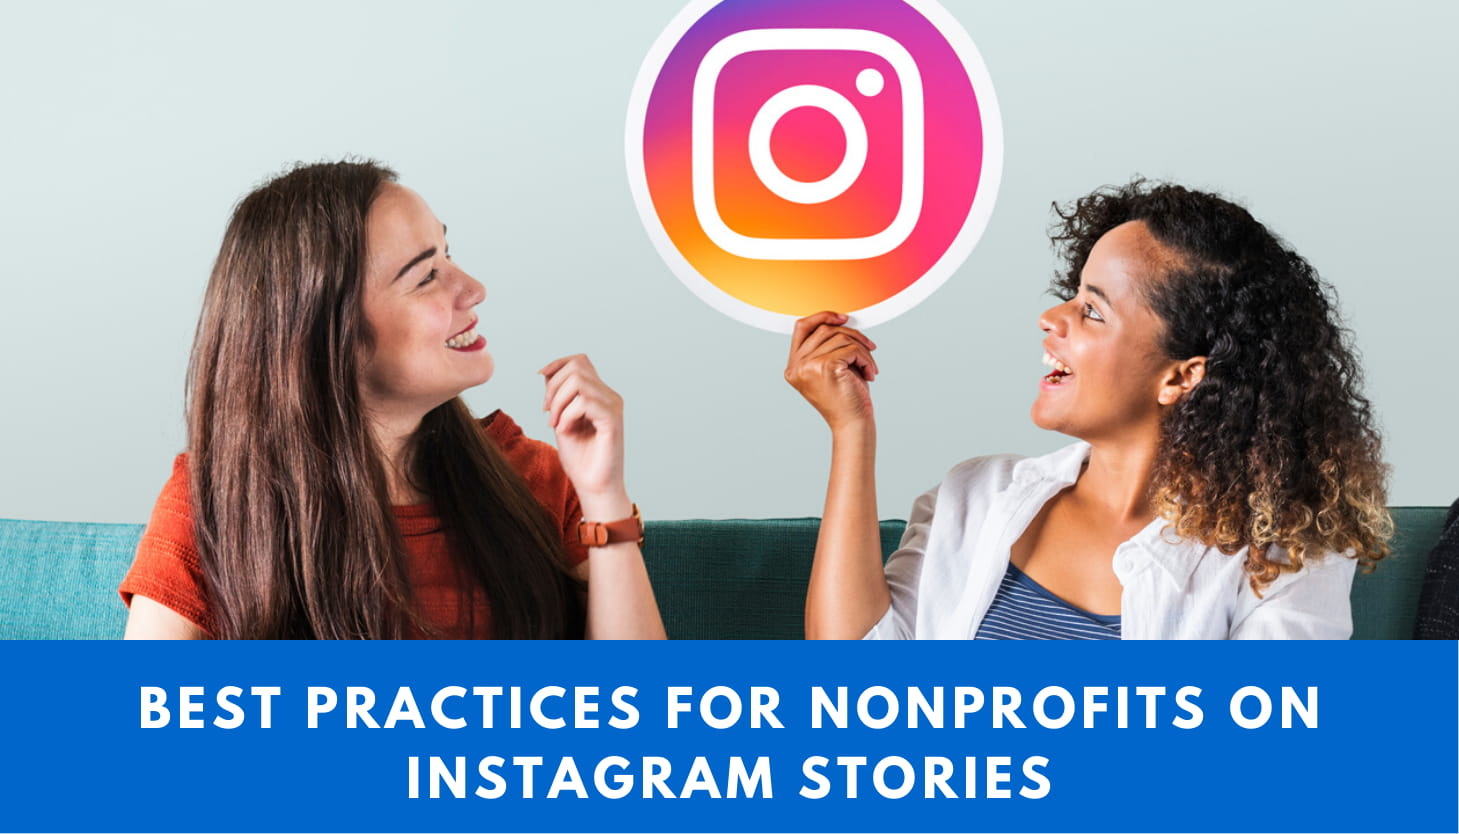 Best Practices for Nonprofits on Instagram Stories